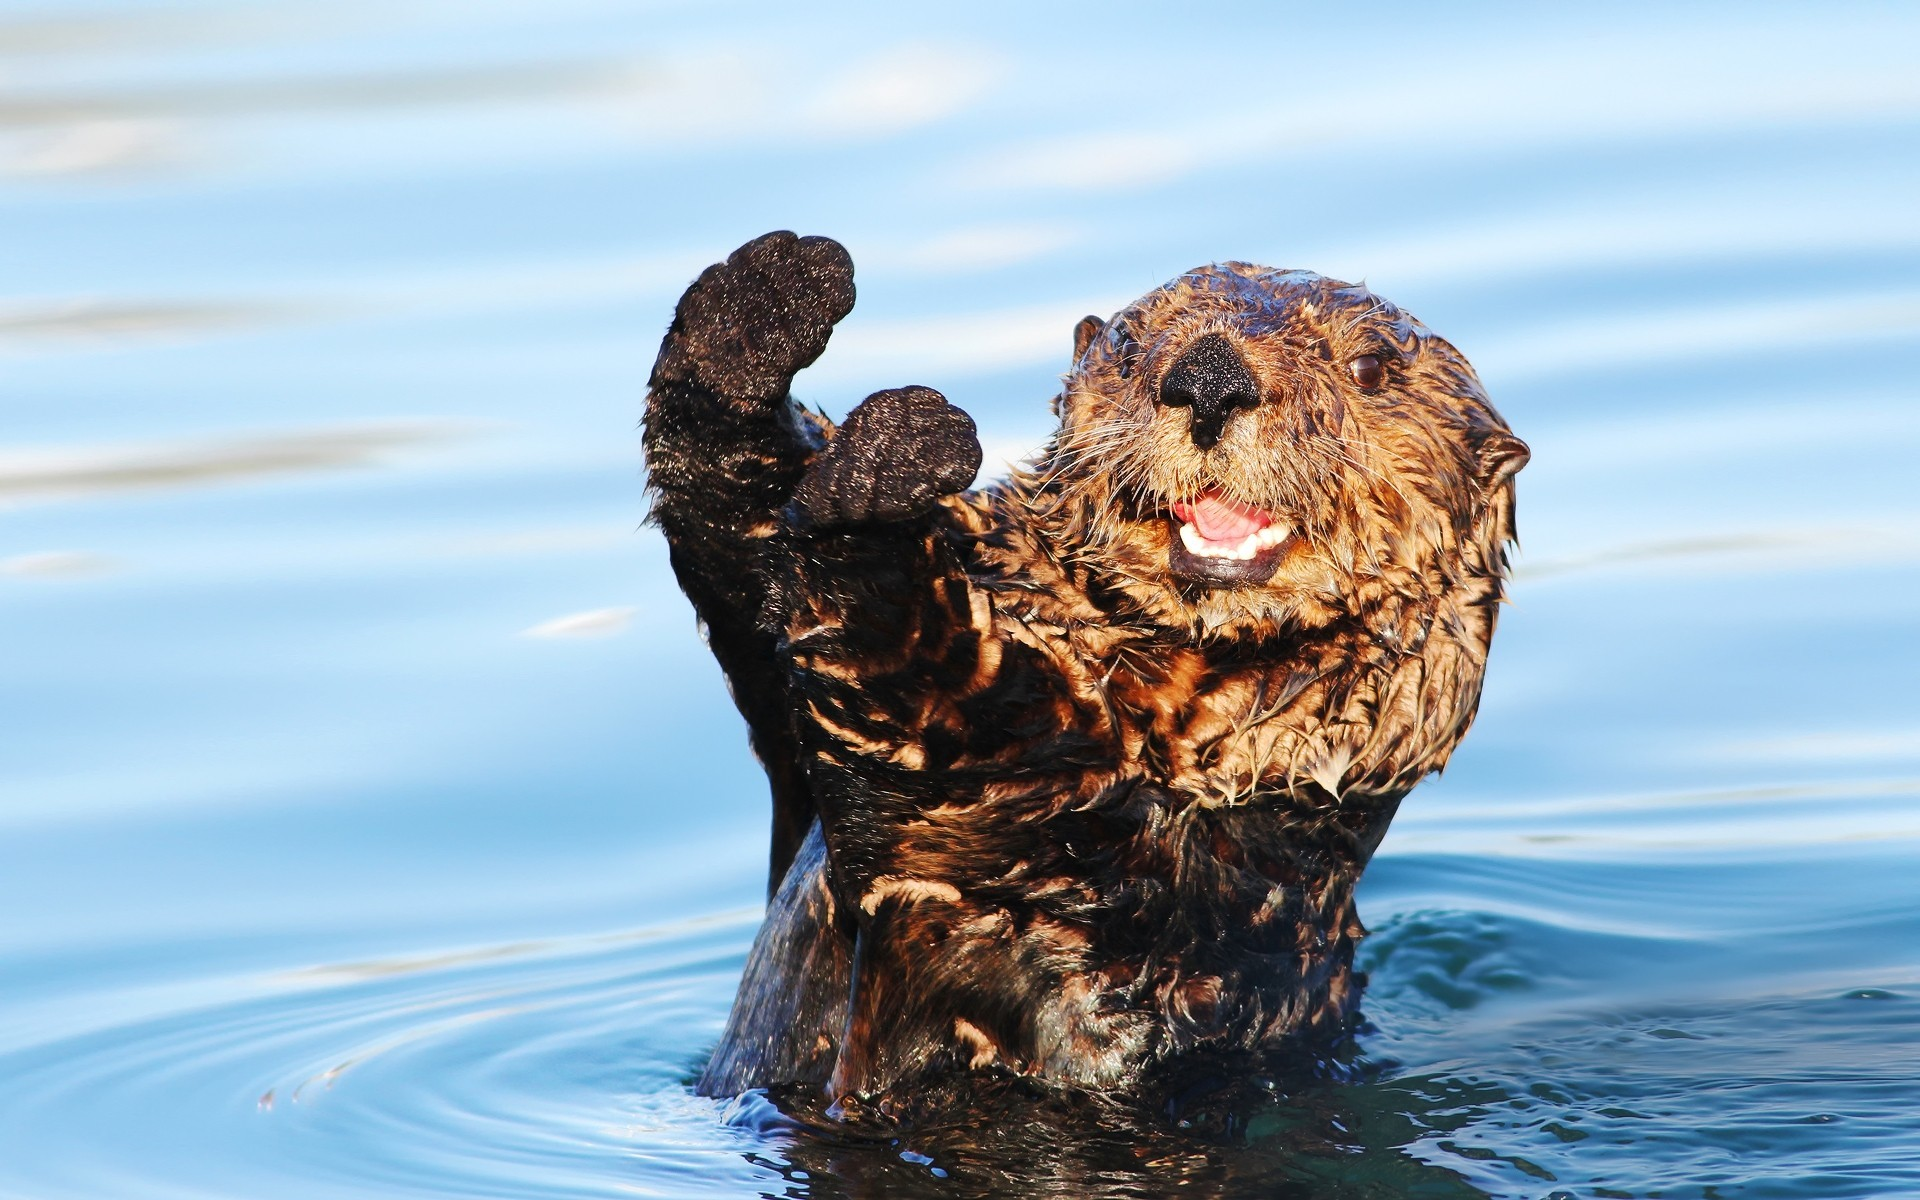 Res: 1920x1200, Sea Otter Cute Wallpapers HD Desktop for Free | SEA OTTERS